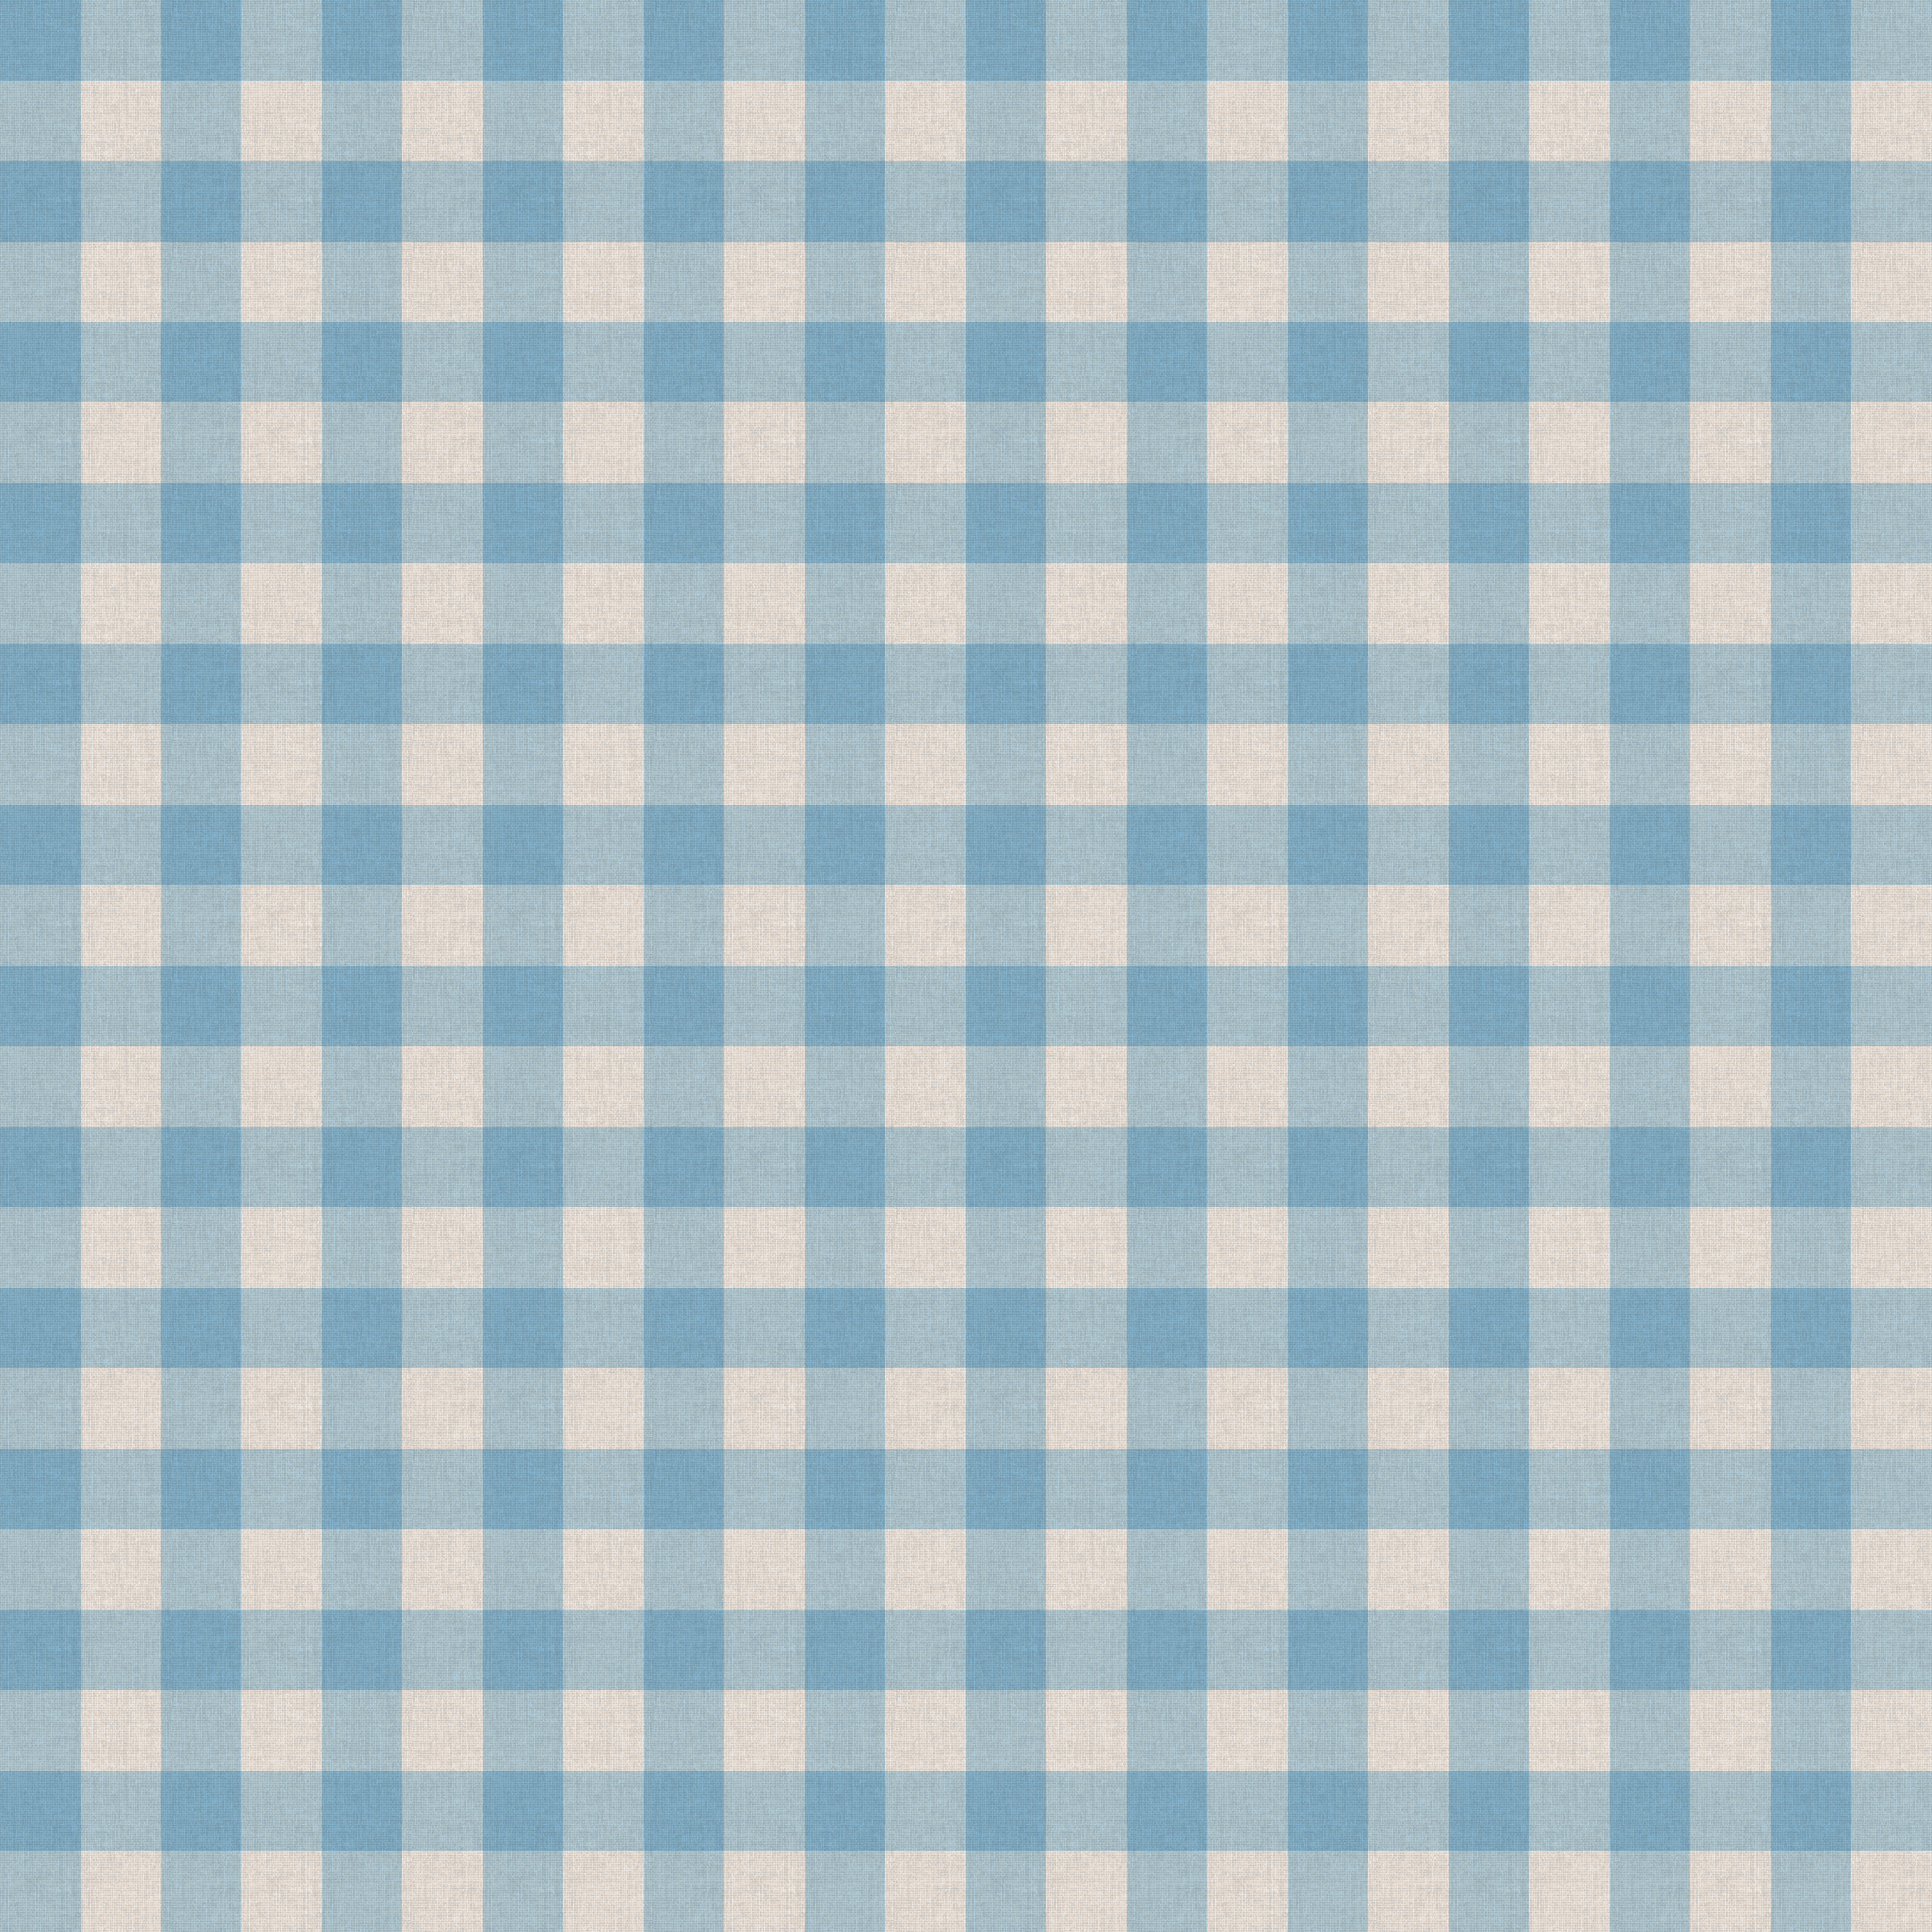 Blue/White Table Cloth Texture